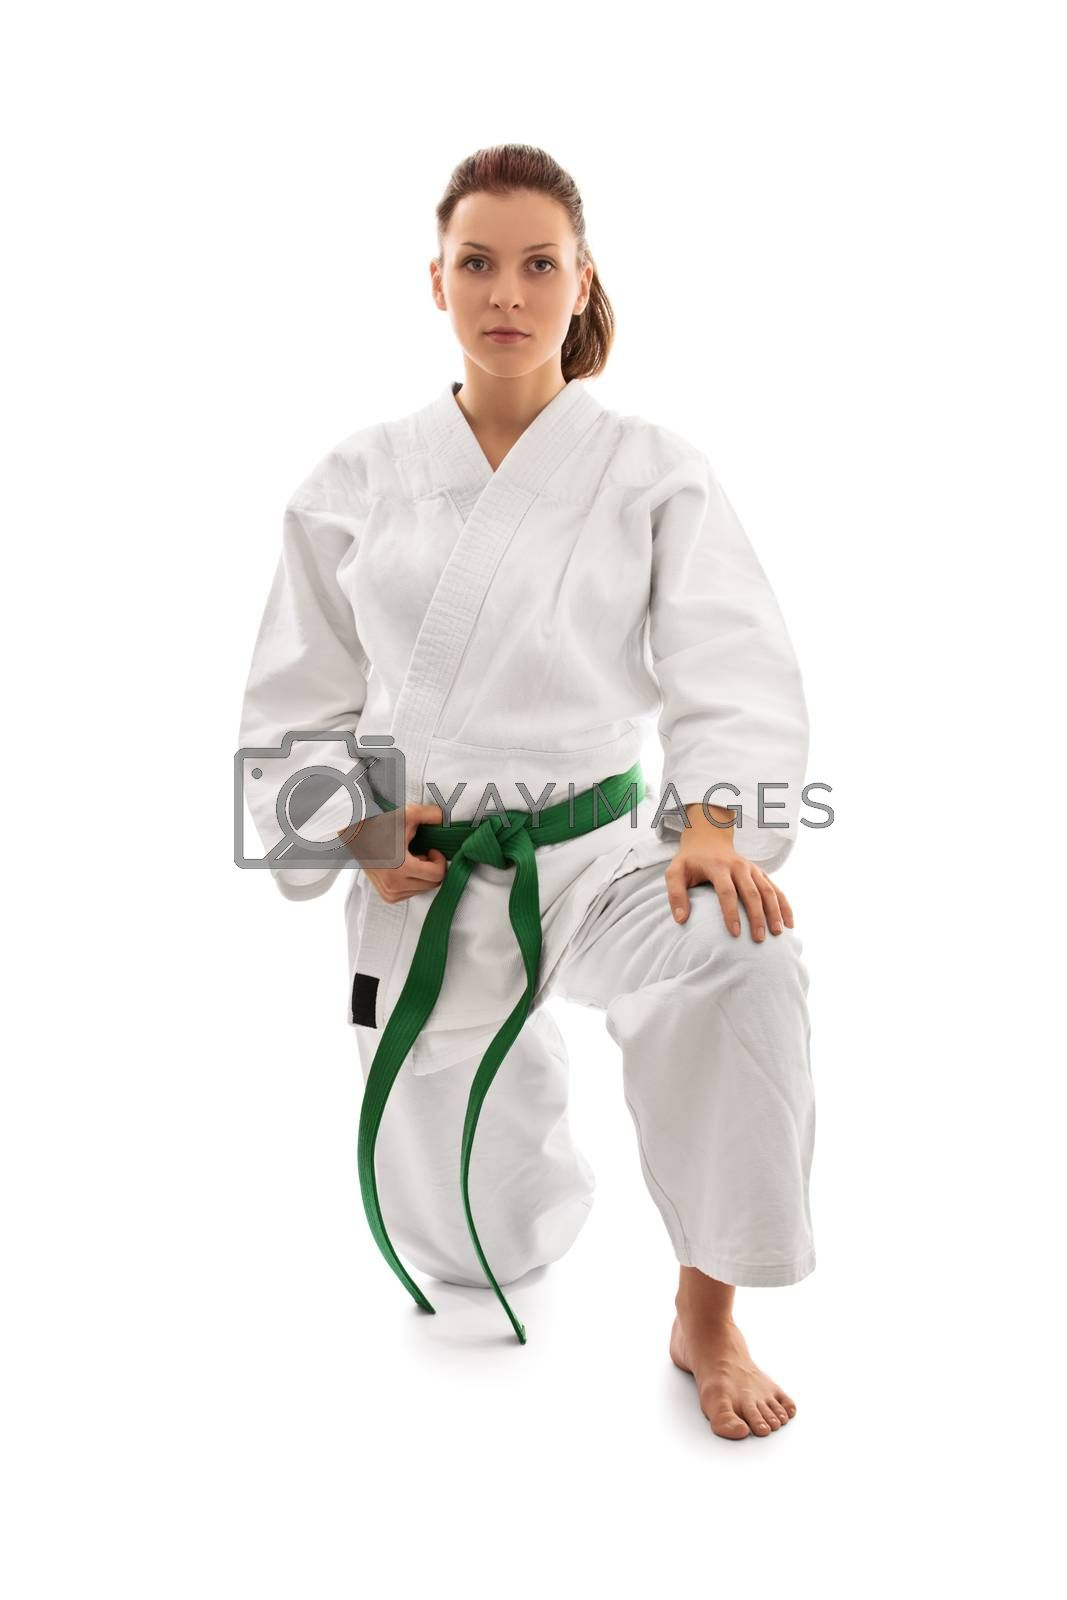 Young female martial arts fighter in white kimono and green belt kneeling on one knee and looking serious, isolated on white background. Body and spirit bent to my will.